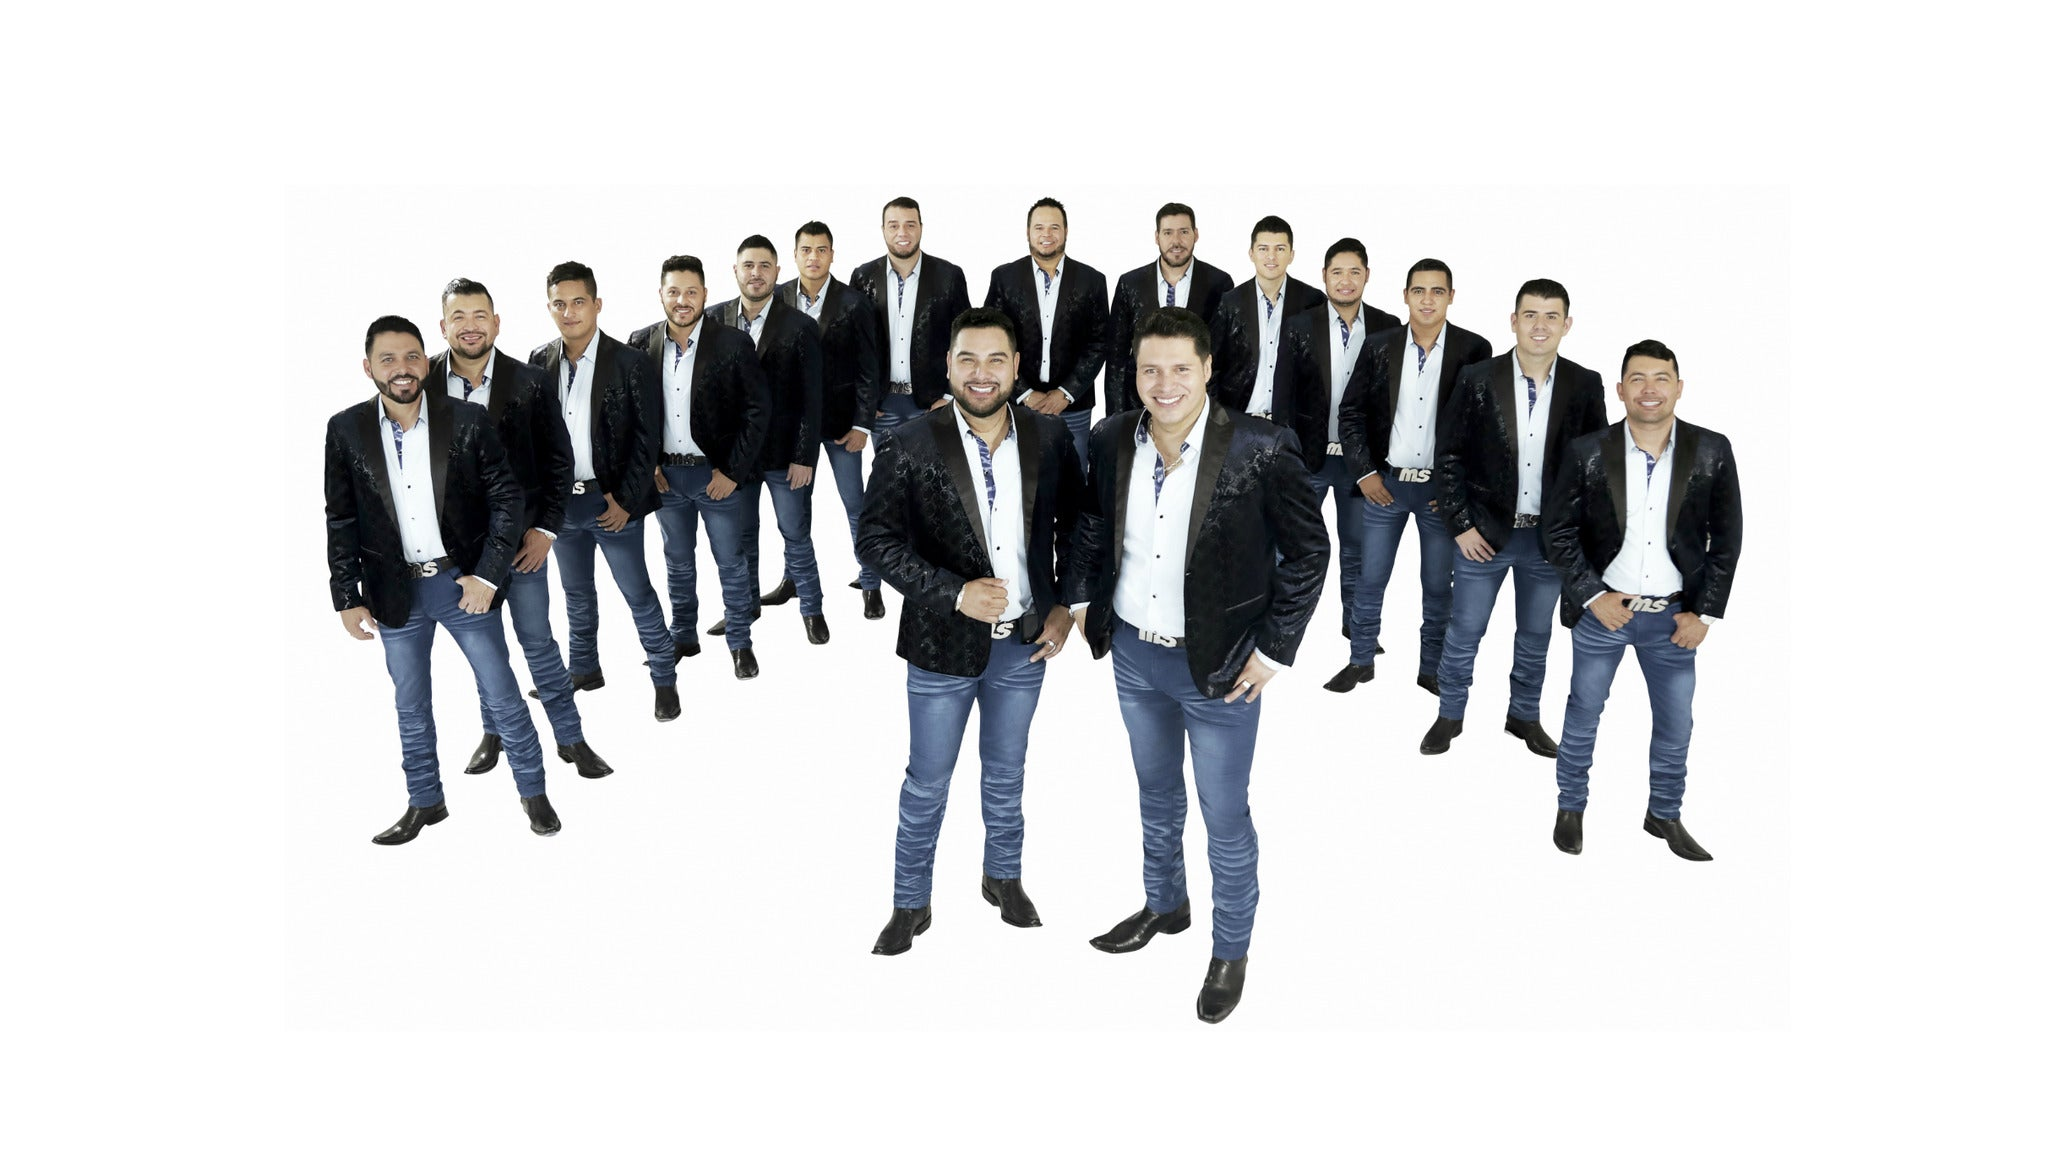 Banda MS at SAP Center at San Jose